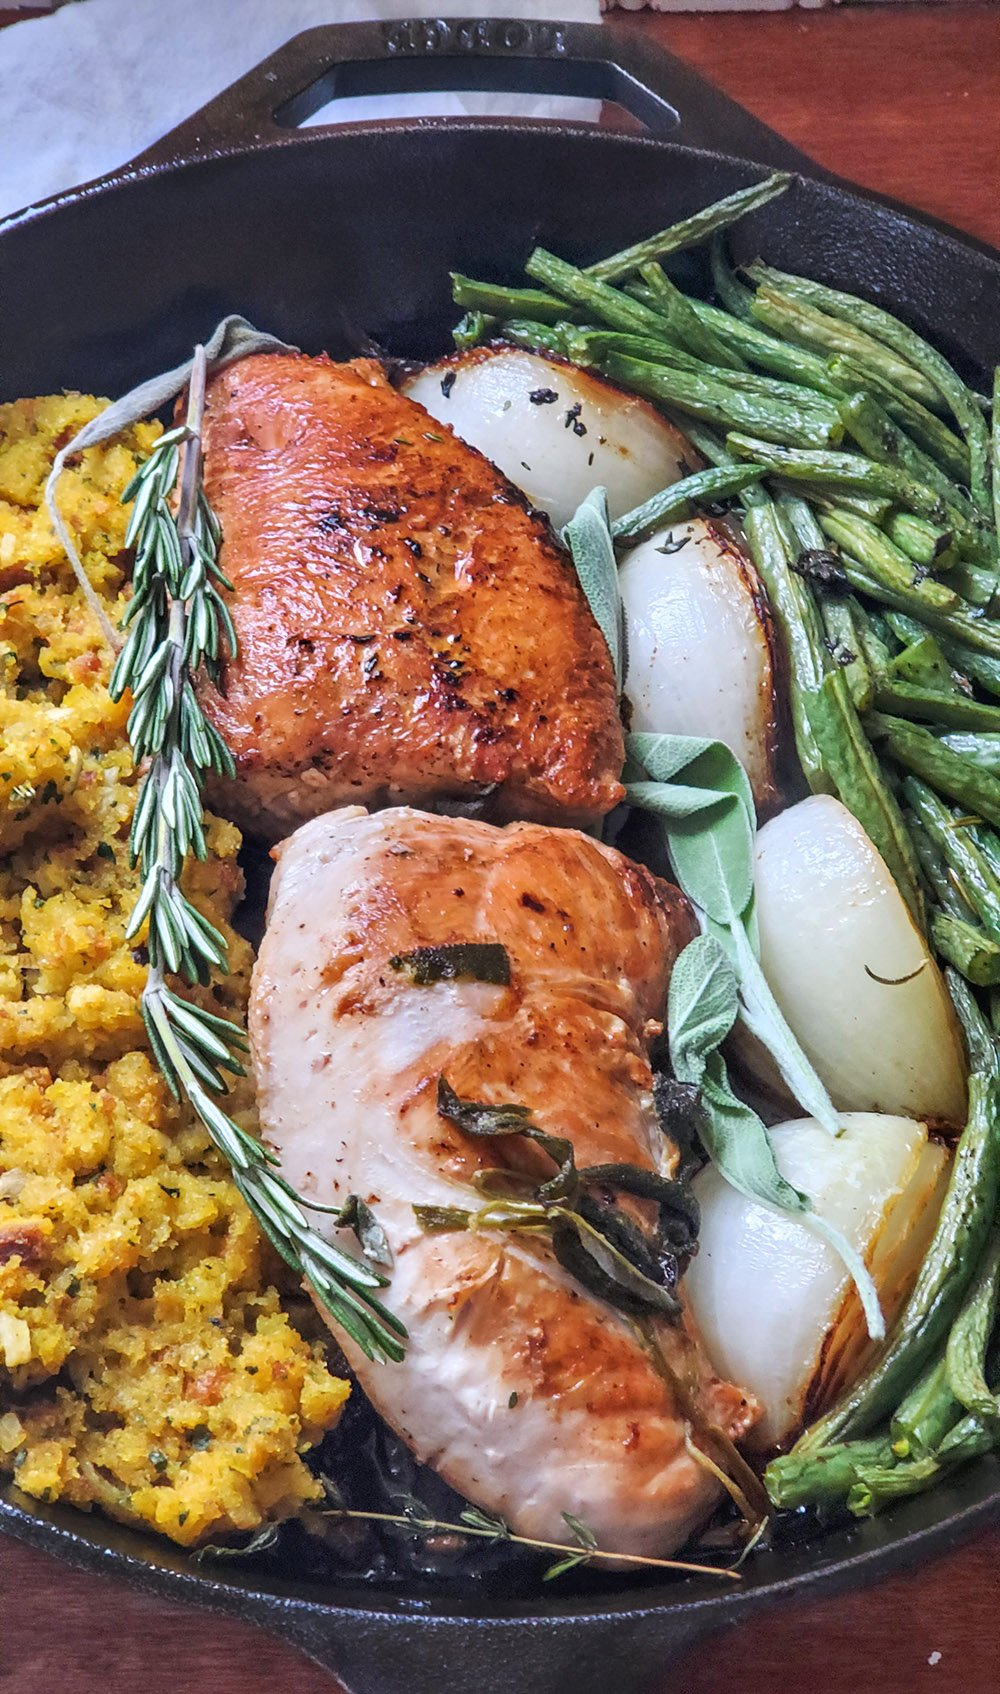 Turkey tenderloin sauteed on the stovetop and then baked in the oven along with veggies, stuffing, and fresh herbs.